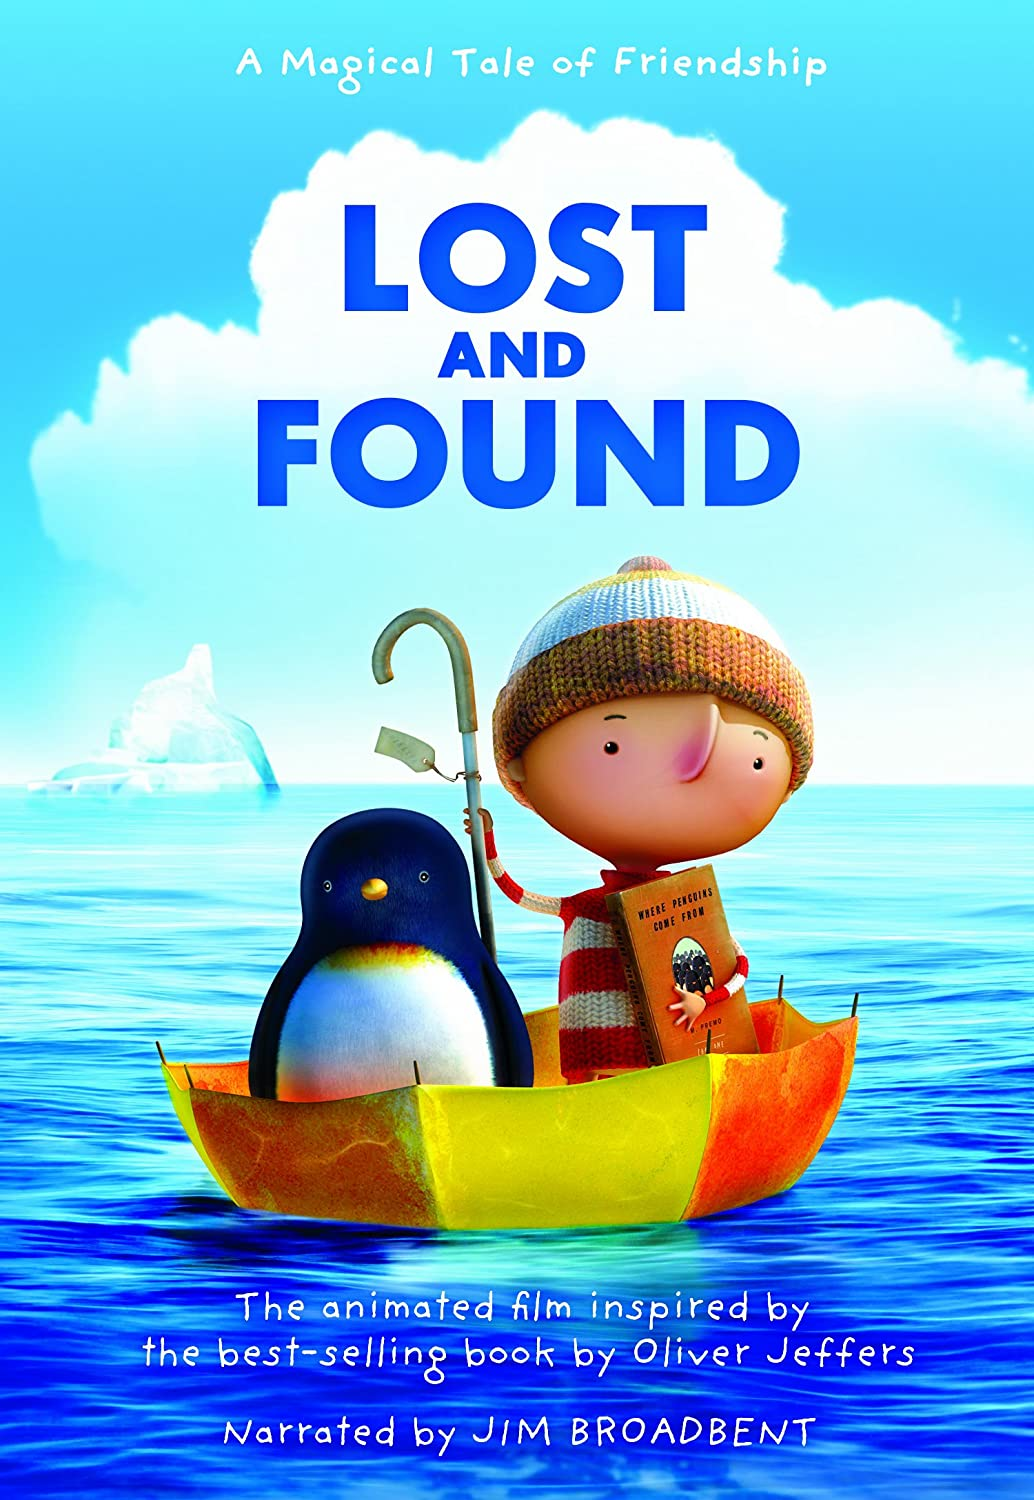 Lost Found Jim Broadbent Philip Hunt Sue Goffe Oliver Jeffers Movies Tv